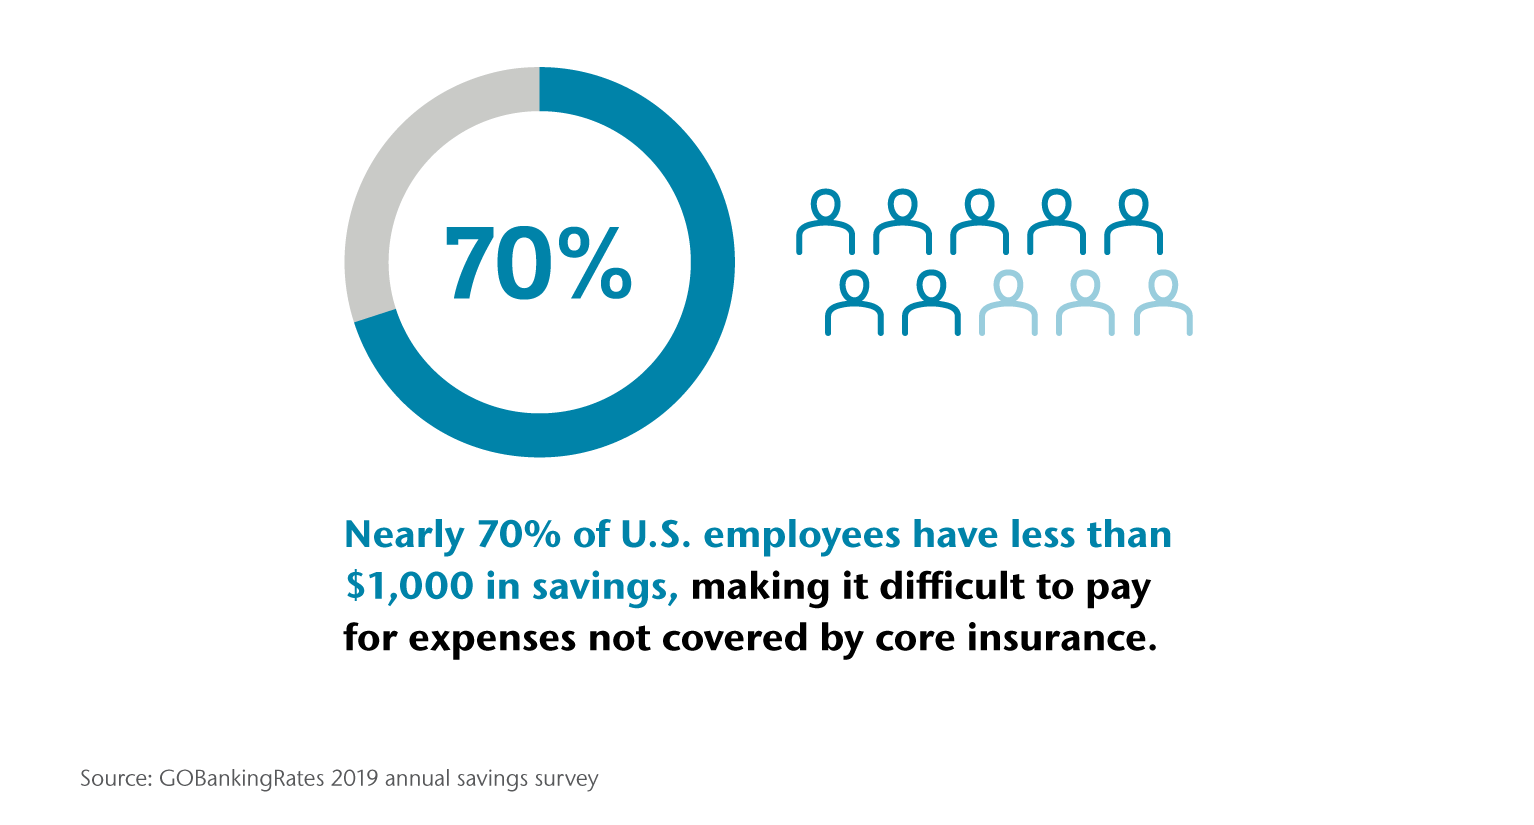 Nearly 70% of U.S. employees have less than $1,000 in savings, making it difficult to pay for expenses not covered by core insurance.